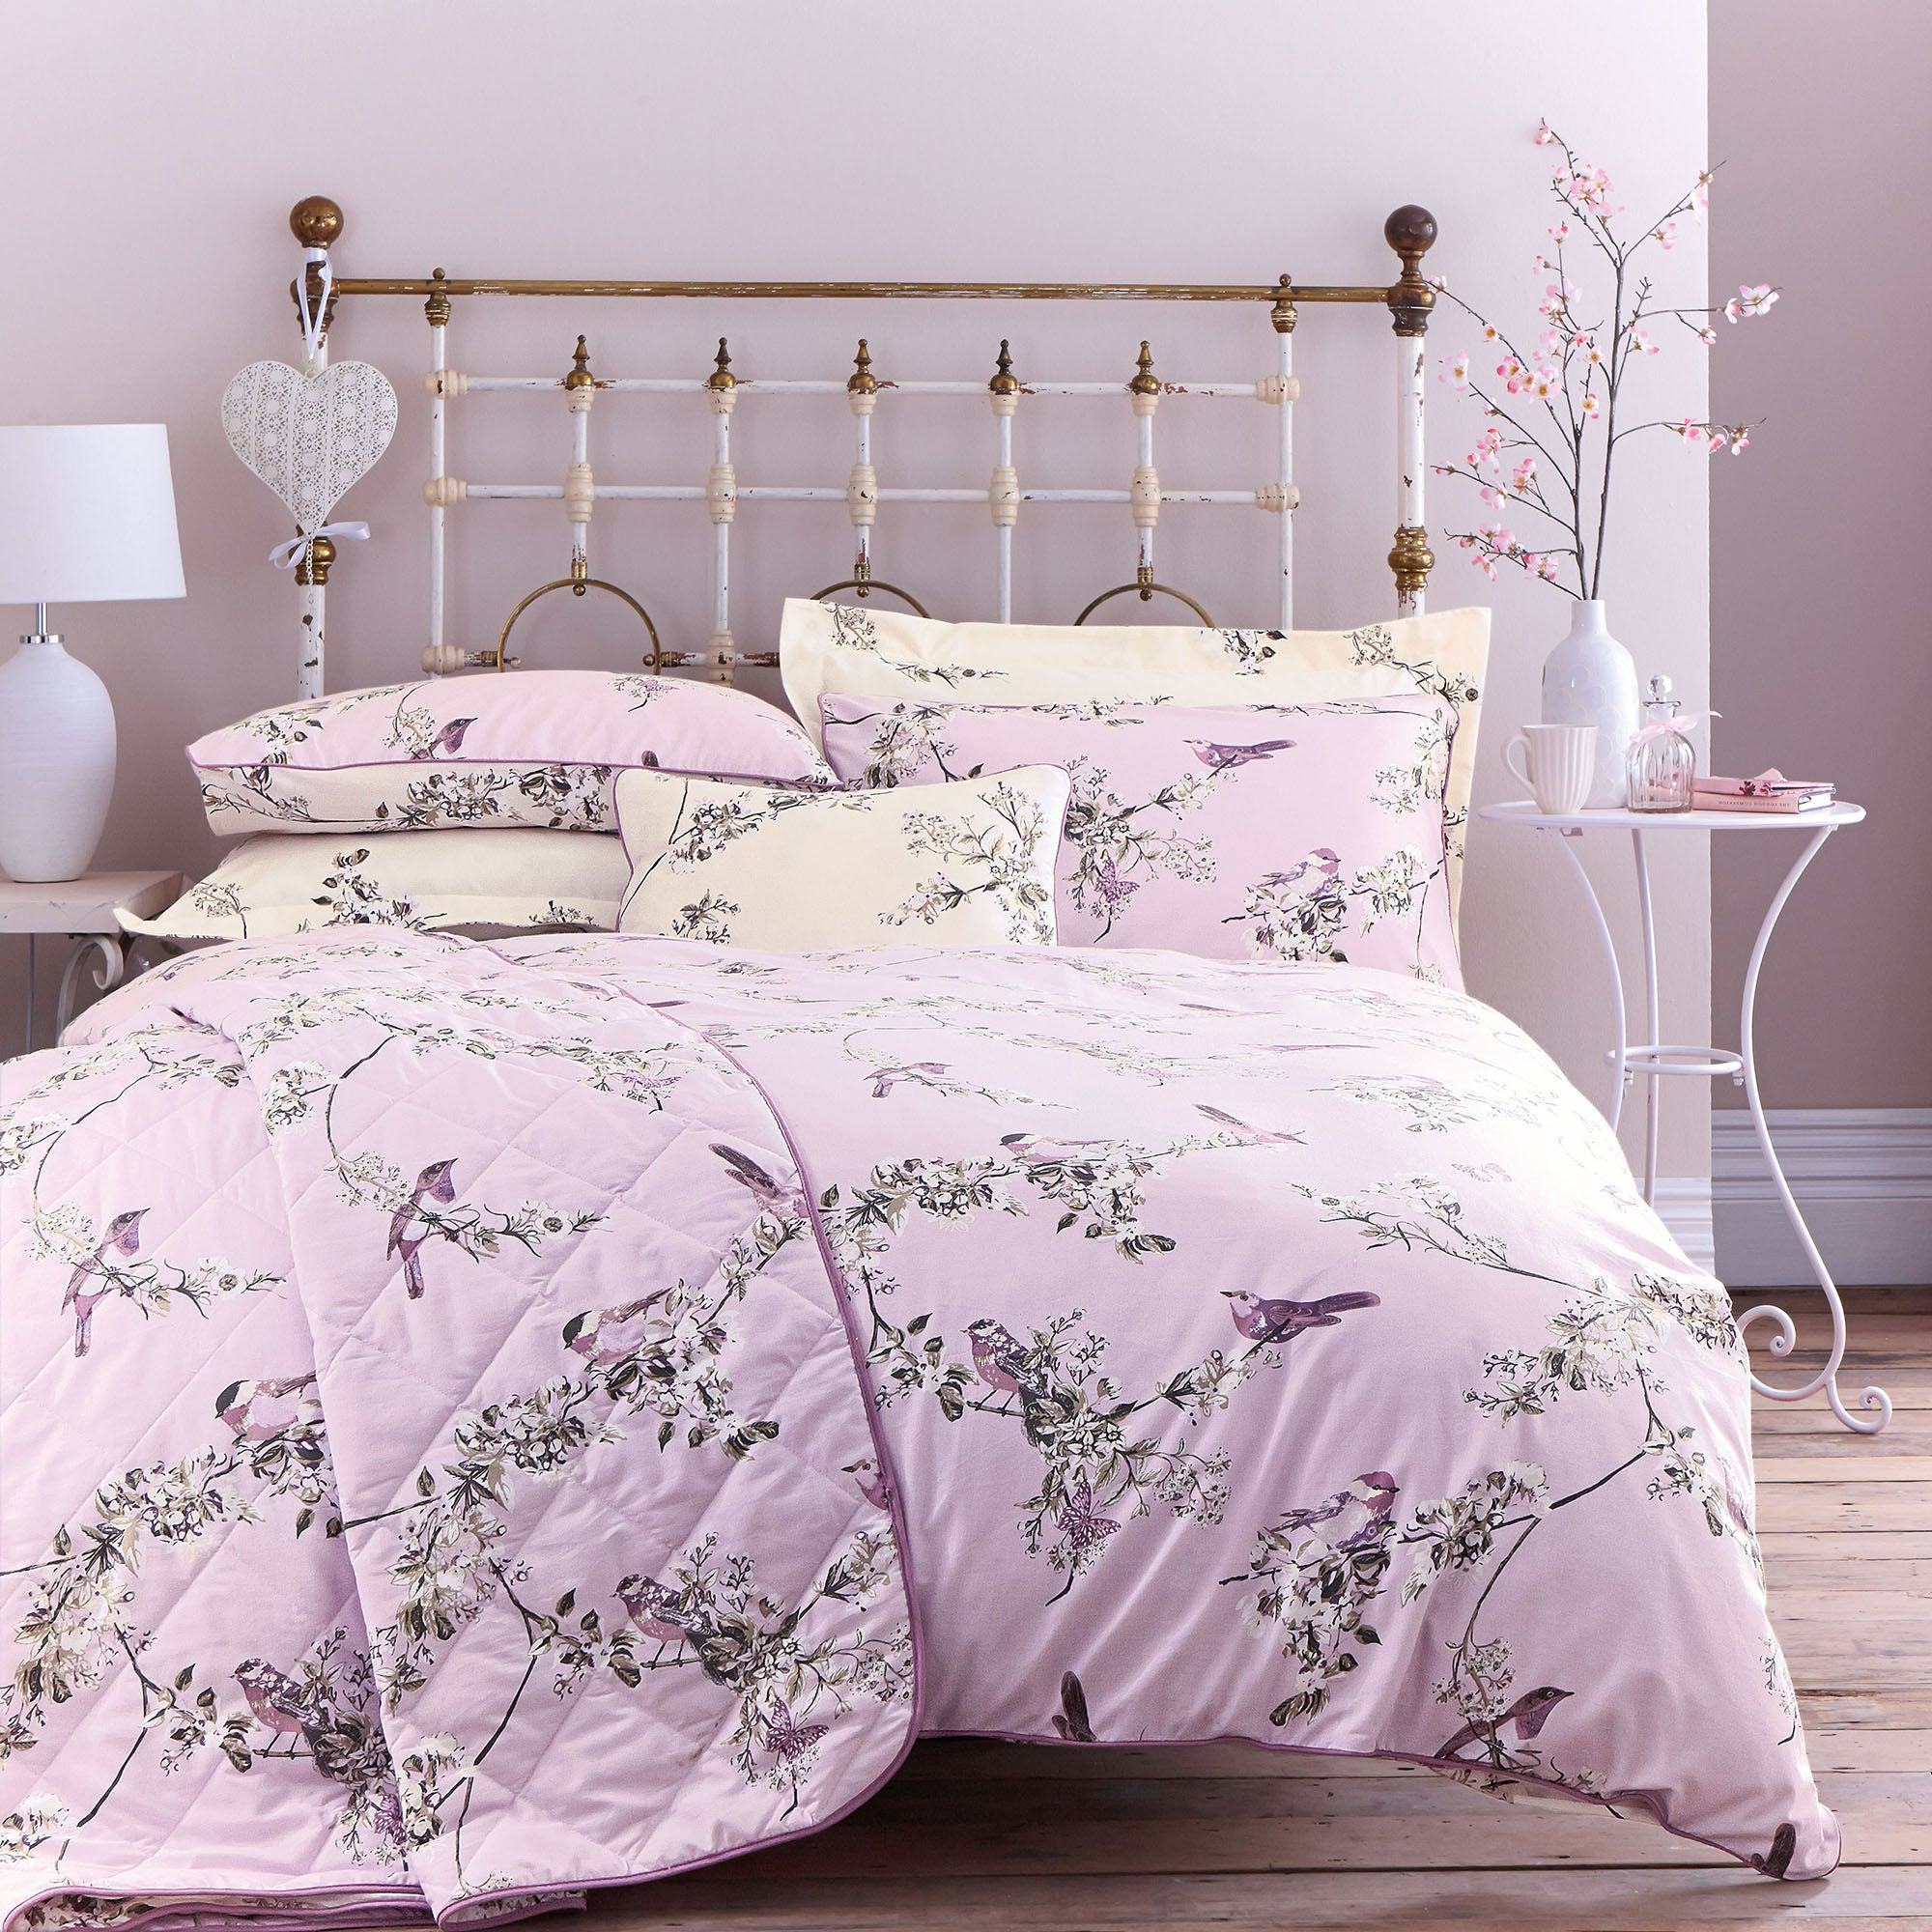 heather beautiful birds collection duvet cover dunelm. Black Bedroom Furniture Sets. Home Design Ideas